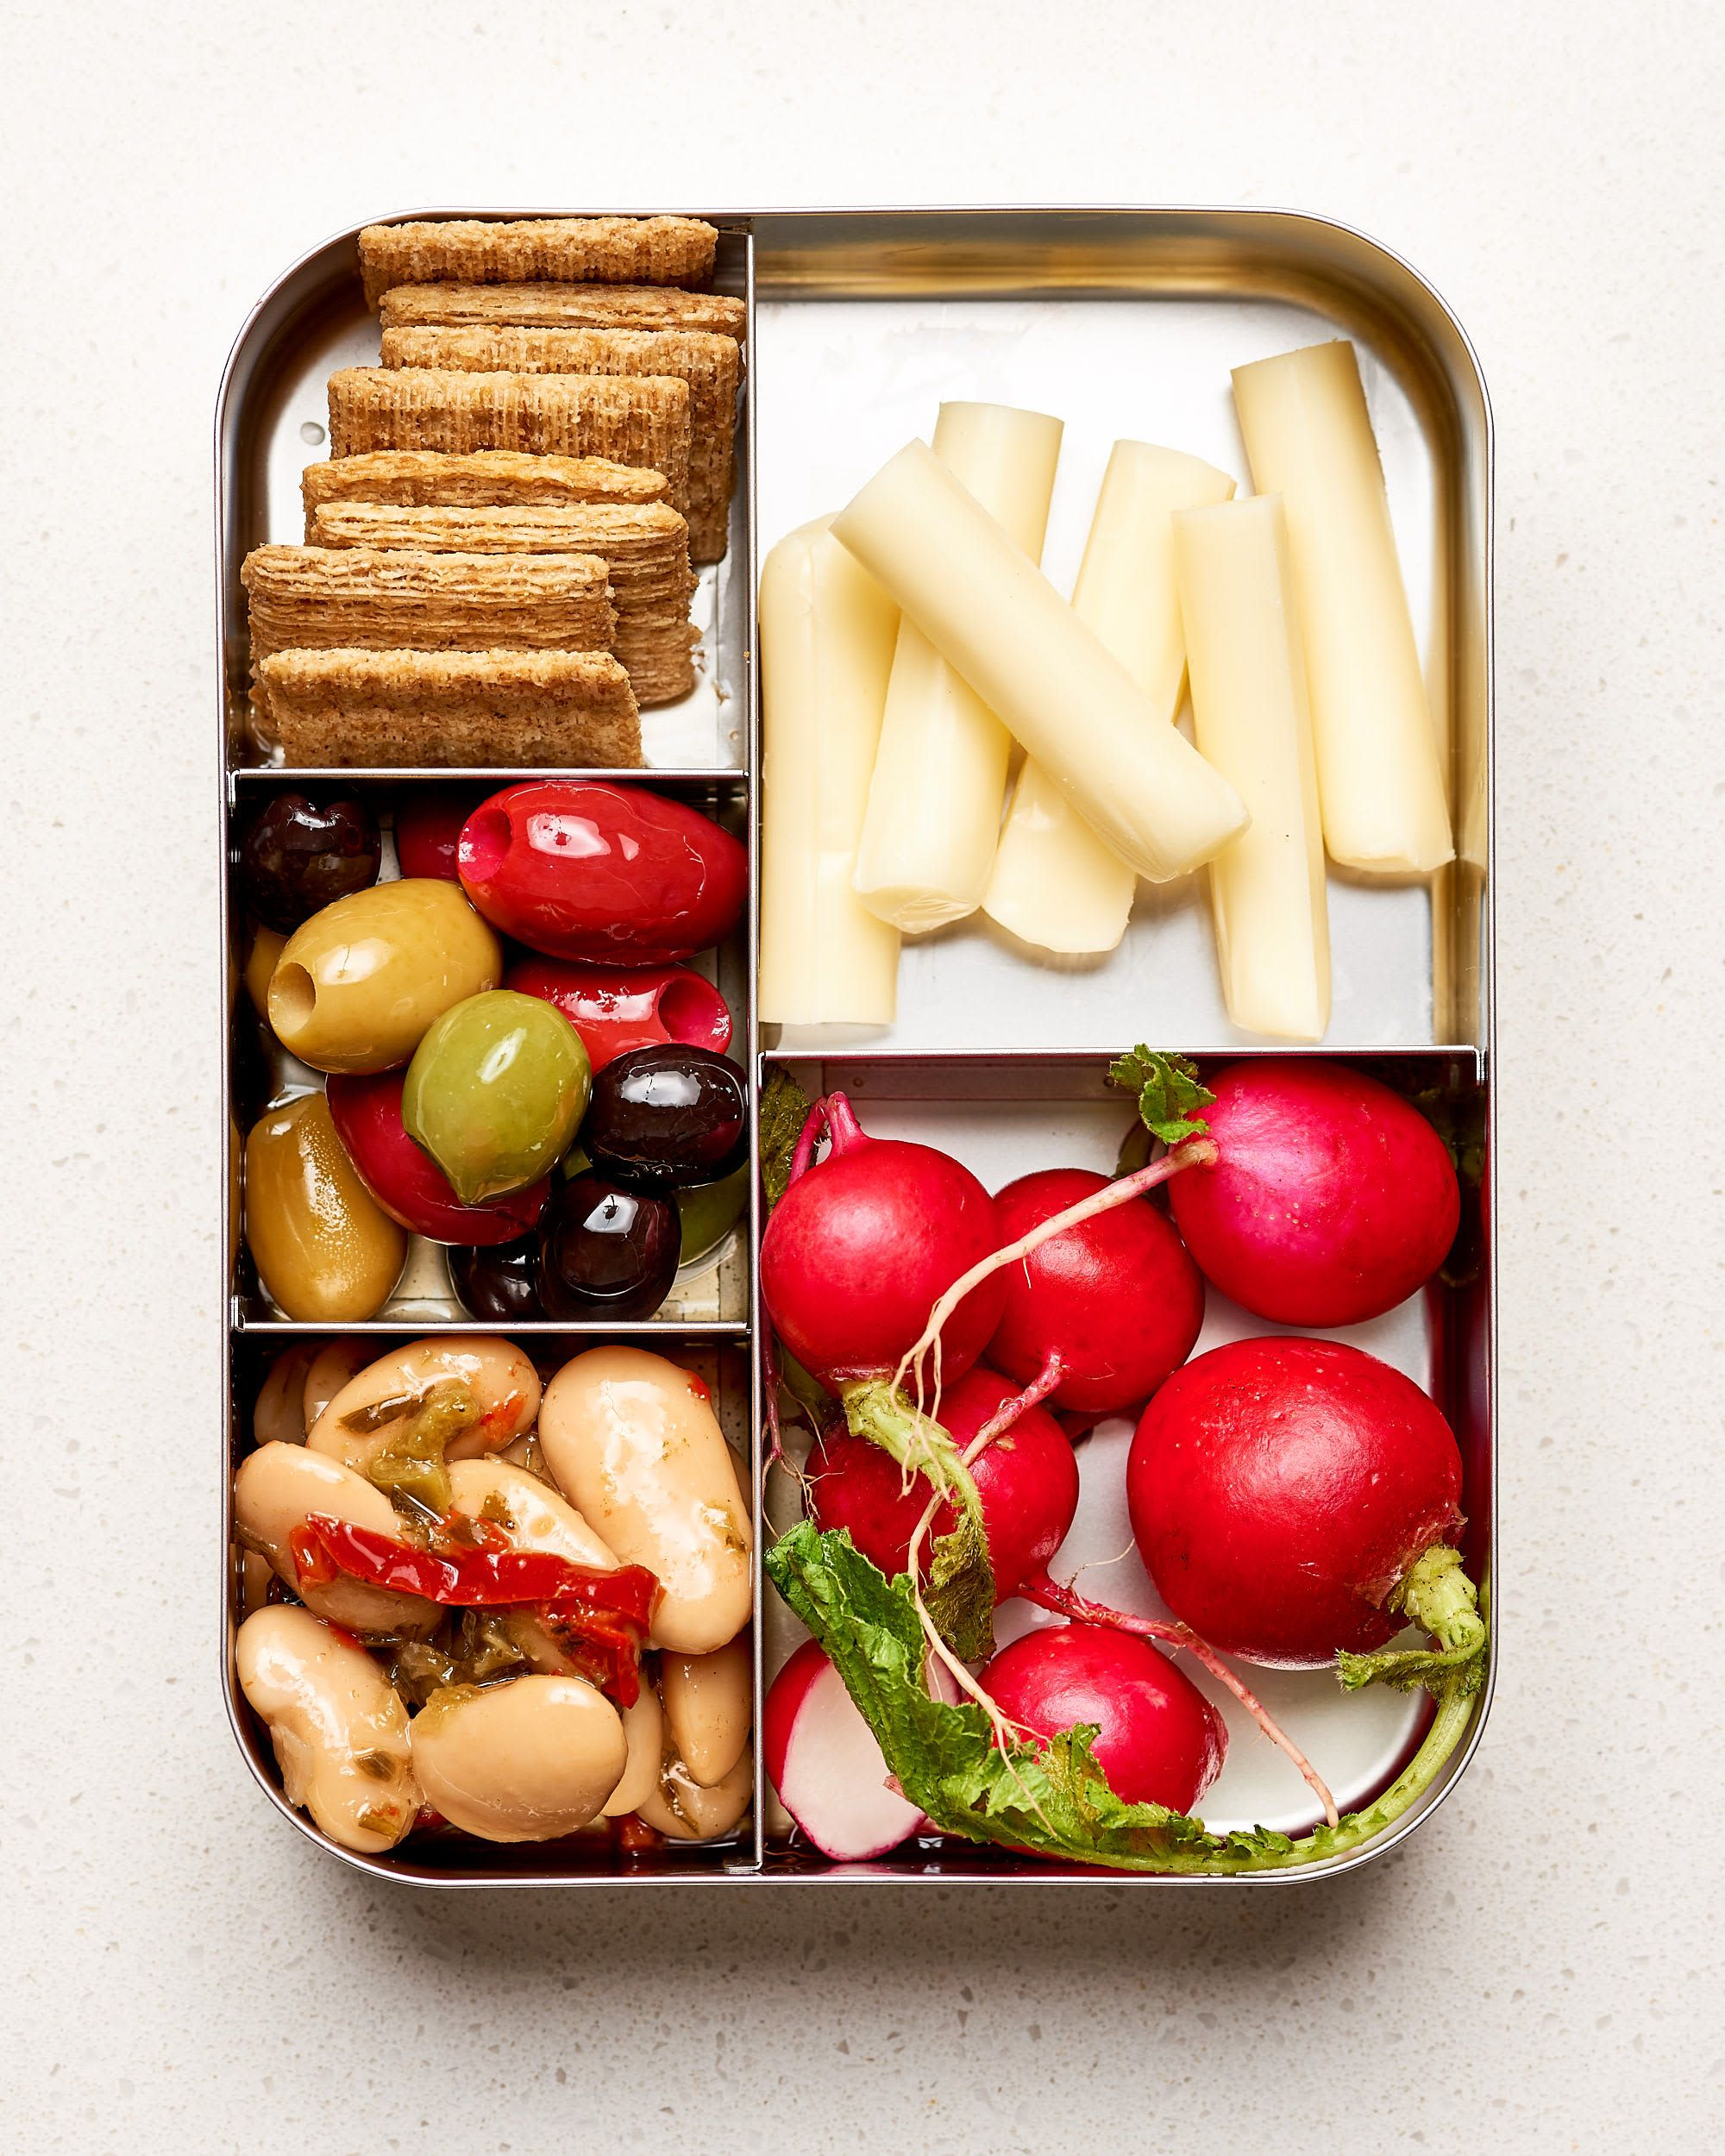 10 Easy Lunch Box Ideas for Vegetarians Vegetarian lunch